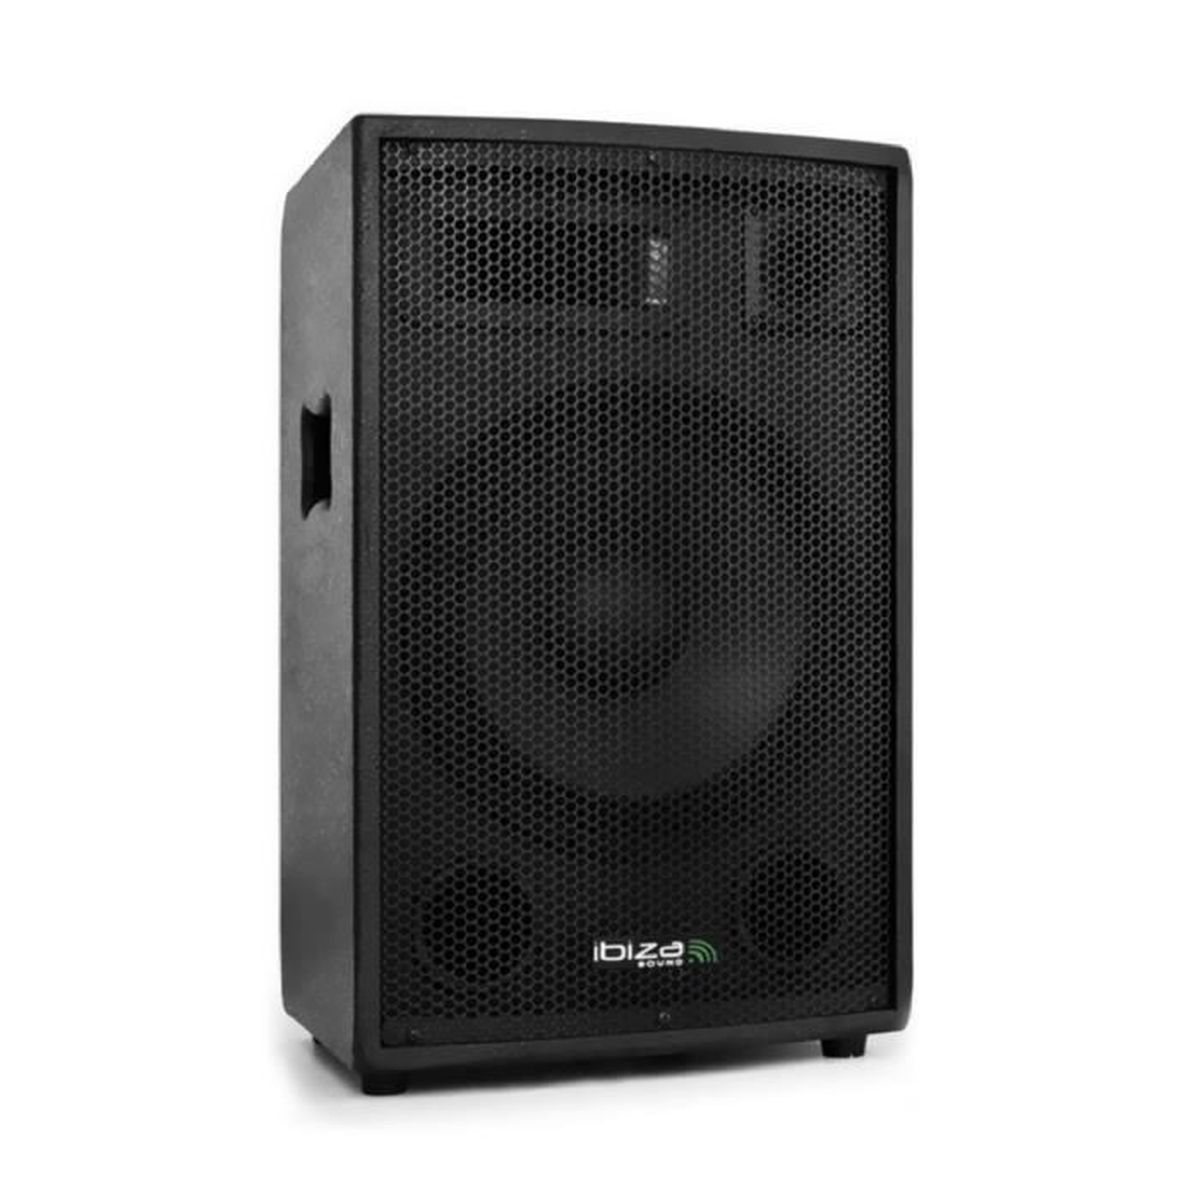 enceinte sono passive 600w 3 voies bassreflex 30cm 12 ibiza club12 enceinte et retour avis. Black Bedroom Furniture Sets. Home Design Ideas